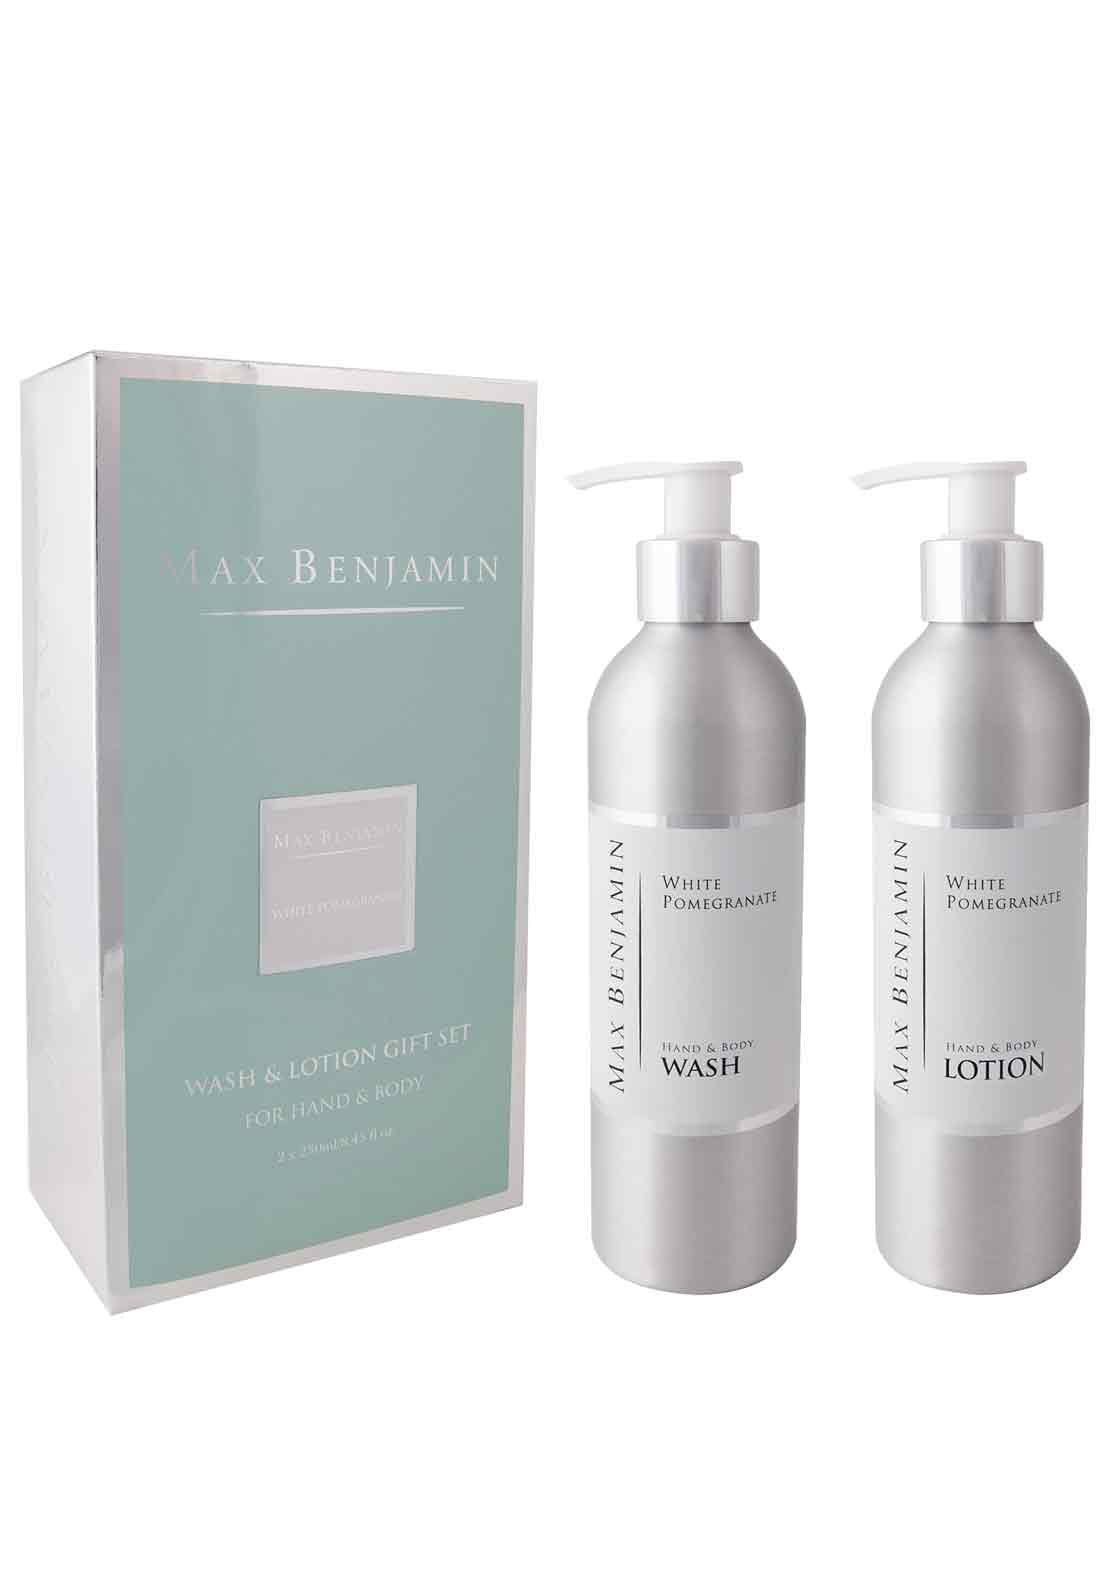 Max Benjamin White Pomegranate Hand & Body Wash & Lotion Gift Set